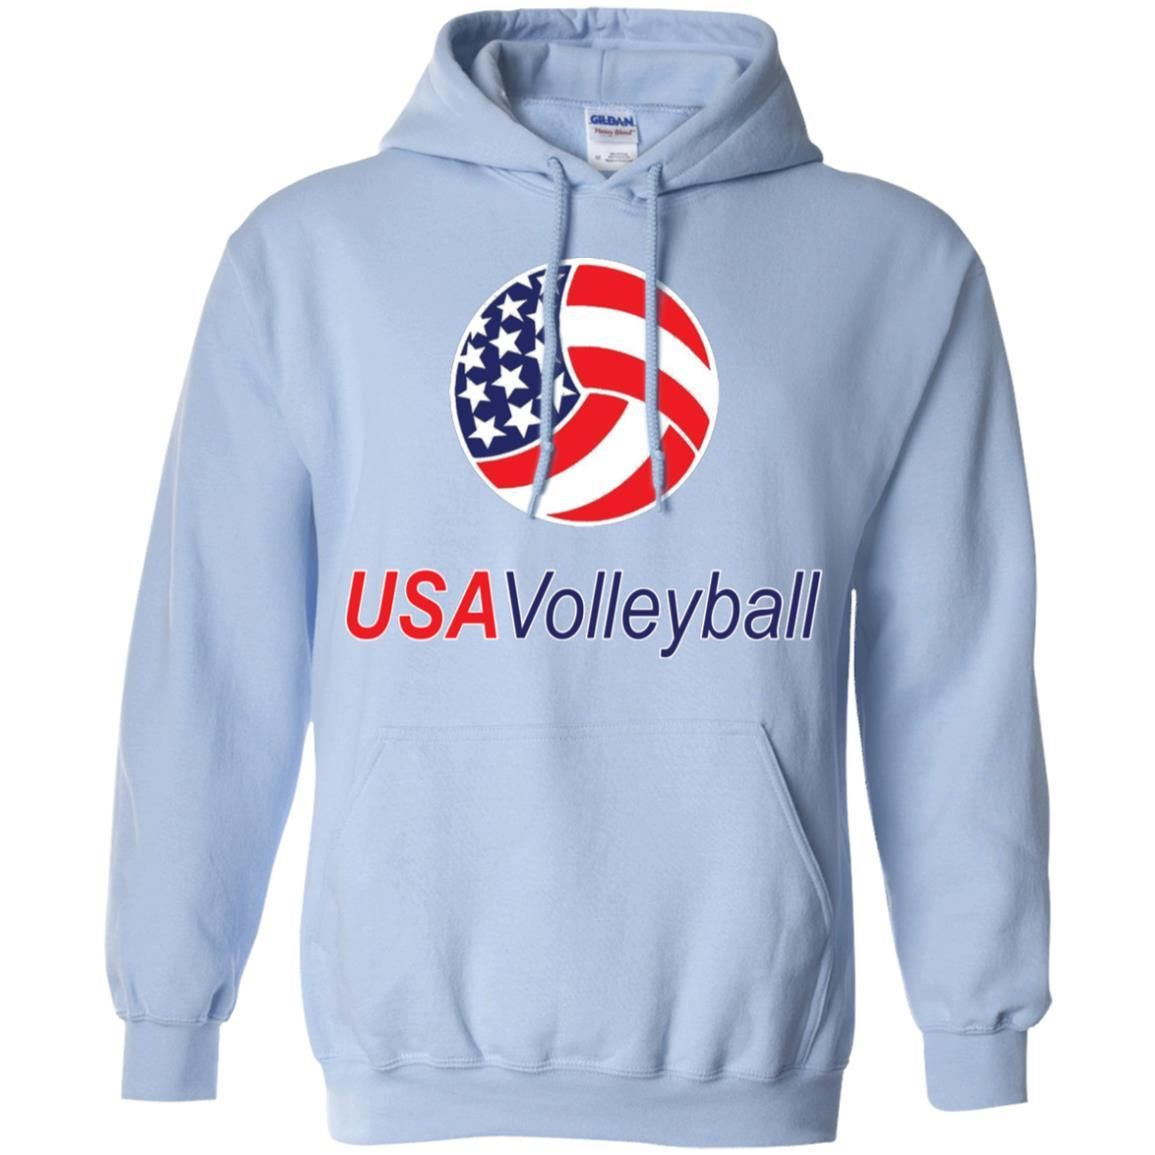 Usa Volleyball Logo T Shirt Gift In 2020 Usa Volleyball T Shirt Volleyball